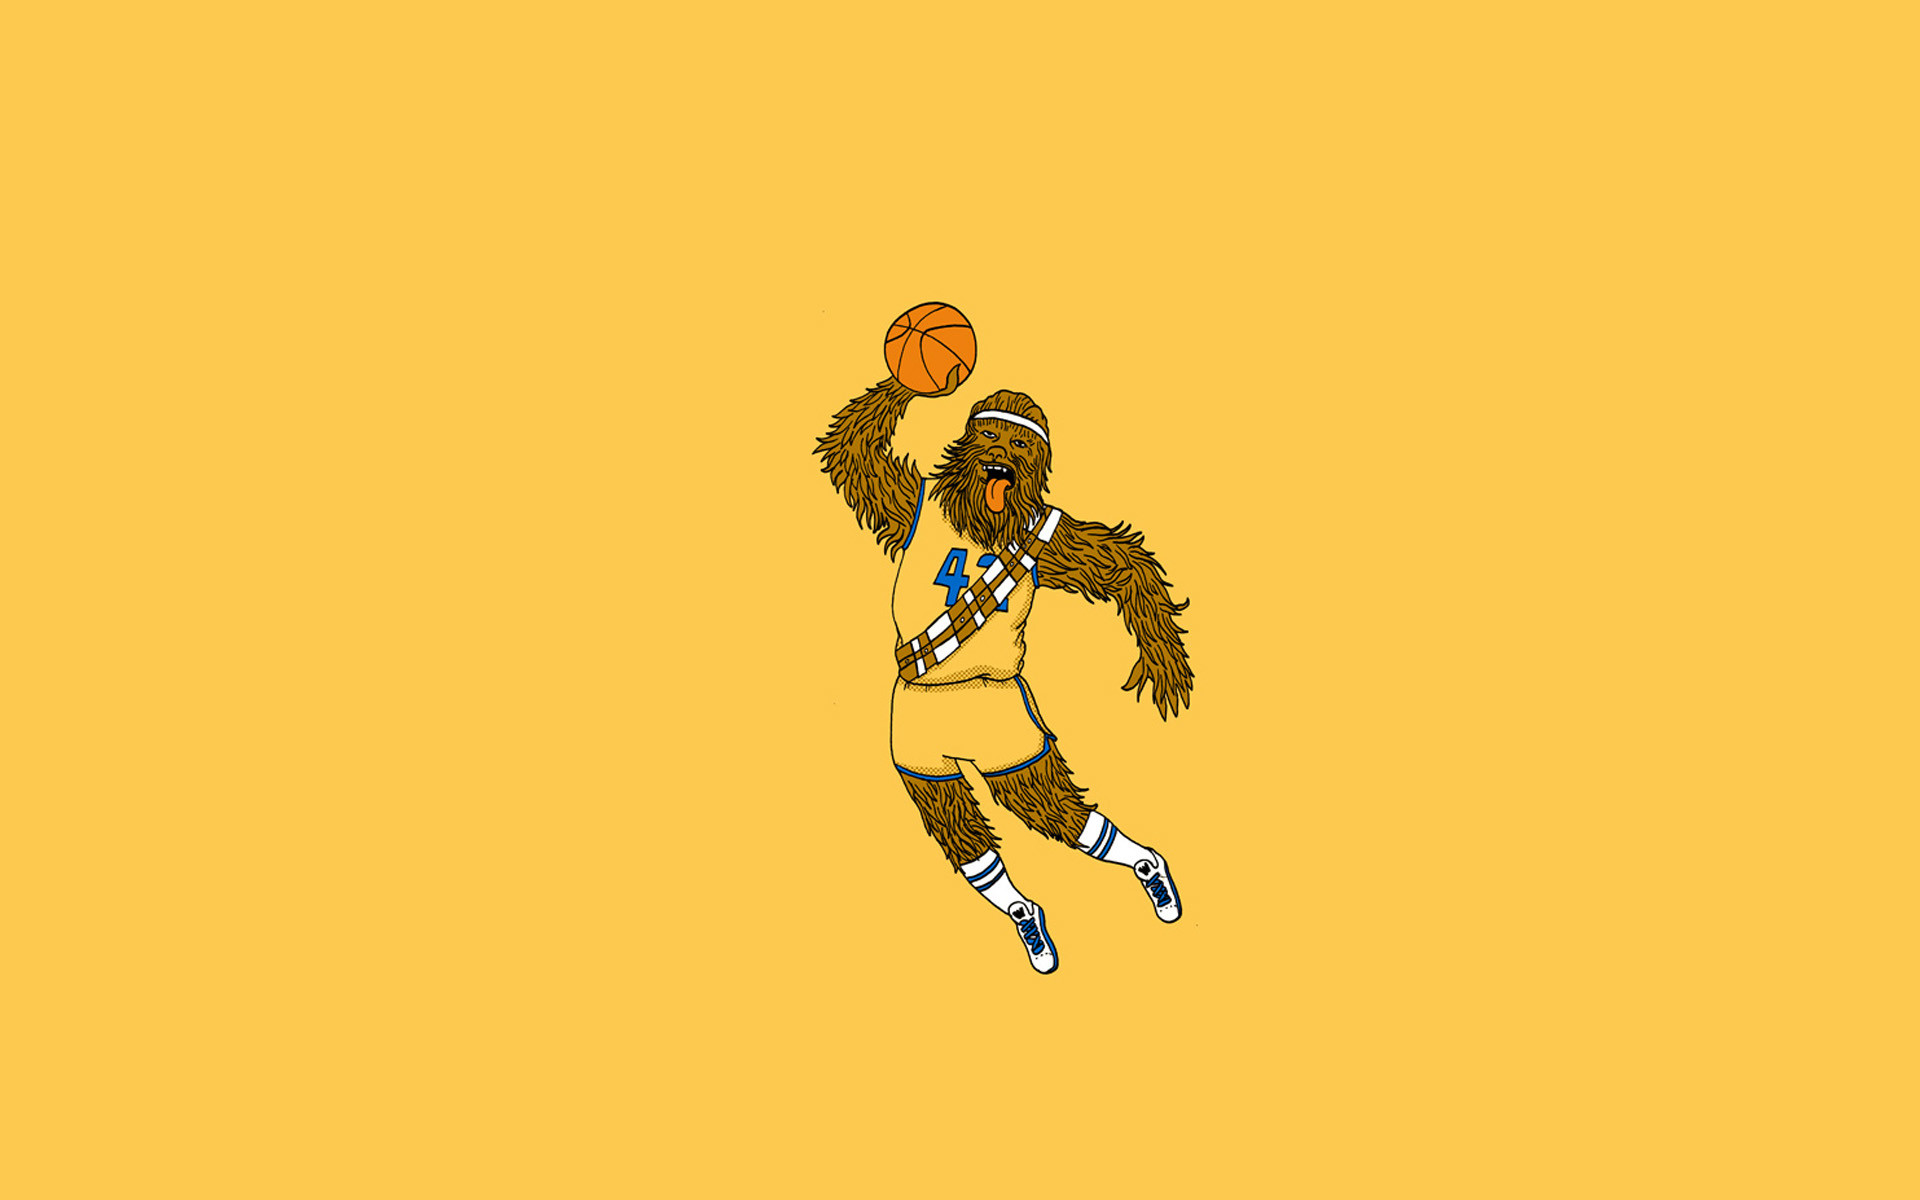 1920x1200 Chewbacca Basketball wallpaper